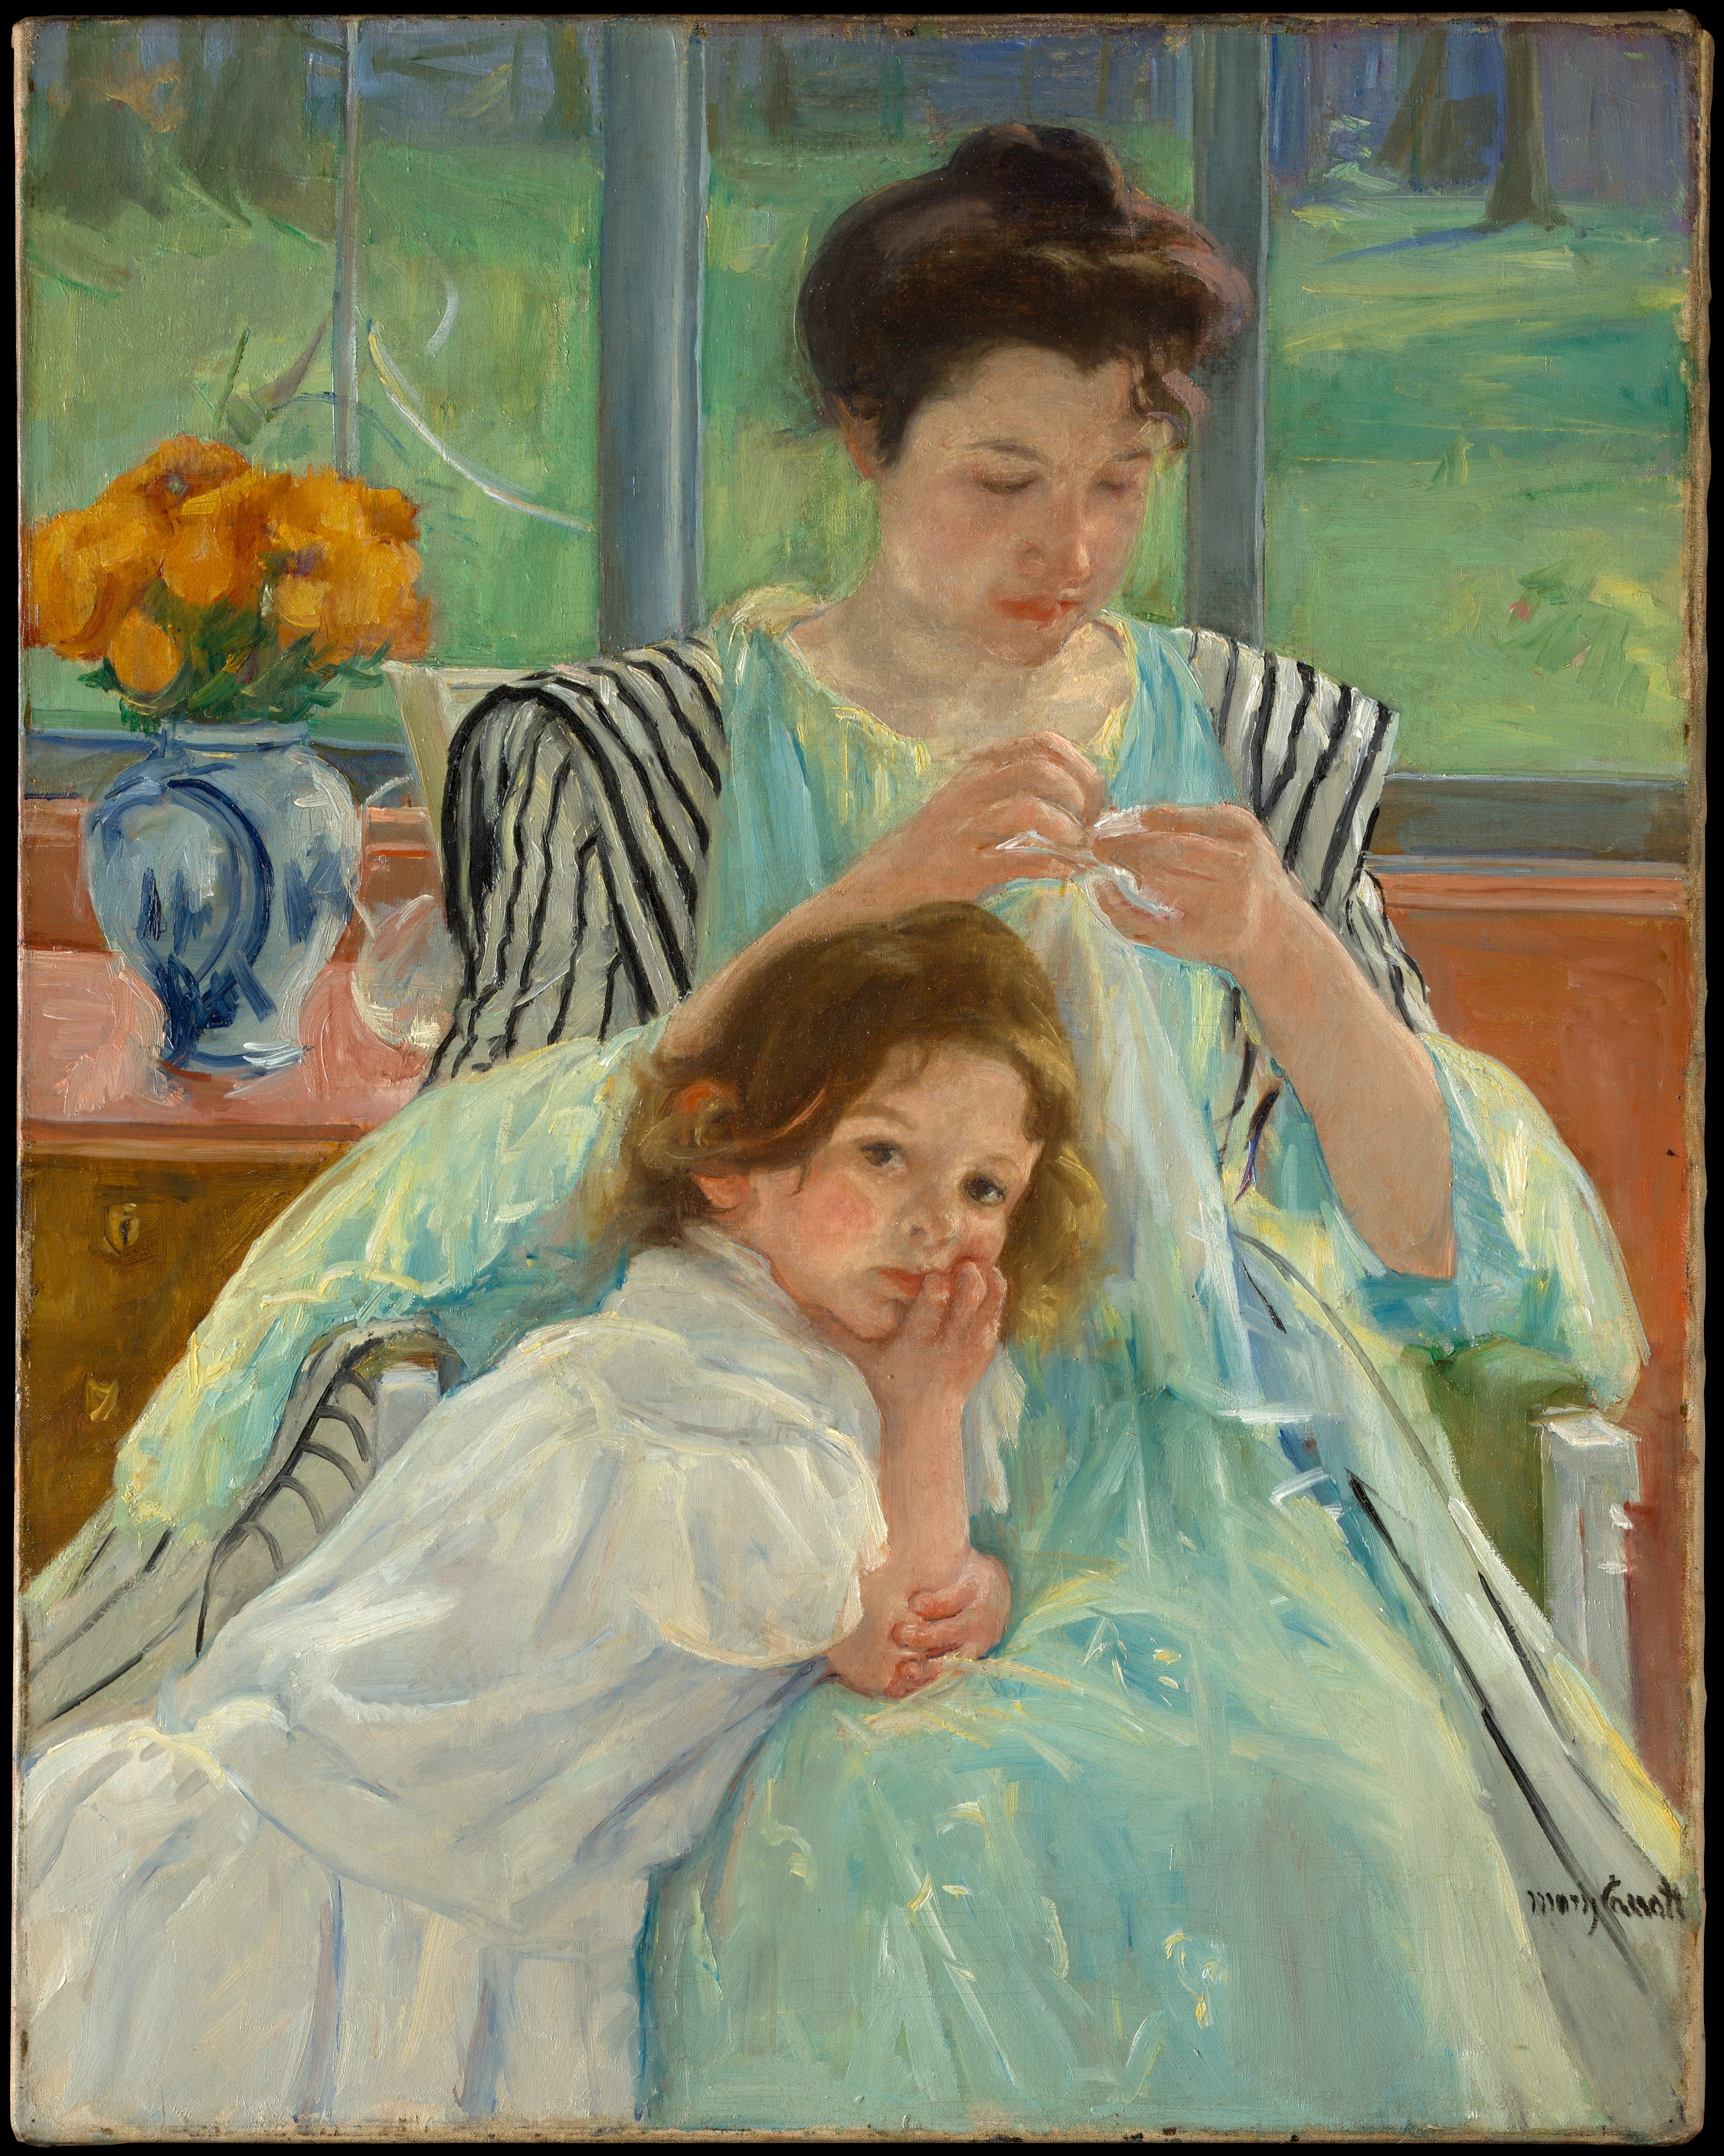 the life and career of mary cassatt Mary cassatt, 1844-1926: she broke  cassatt spent her life working to change traditional beliefs about art and a woman's role in society  her career as a.